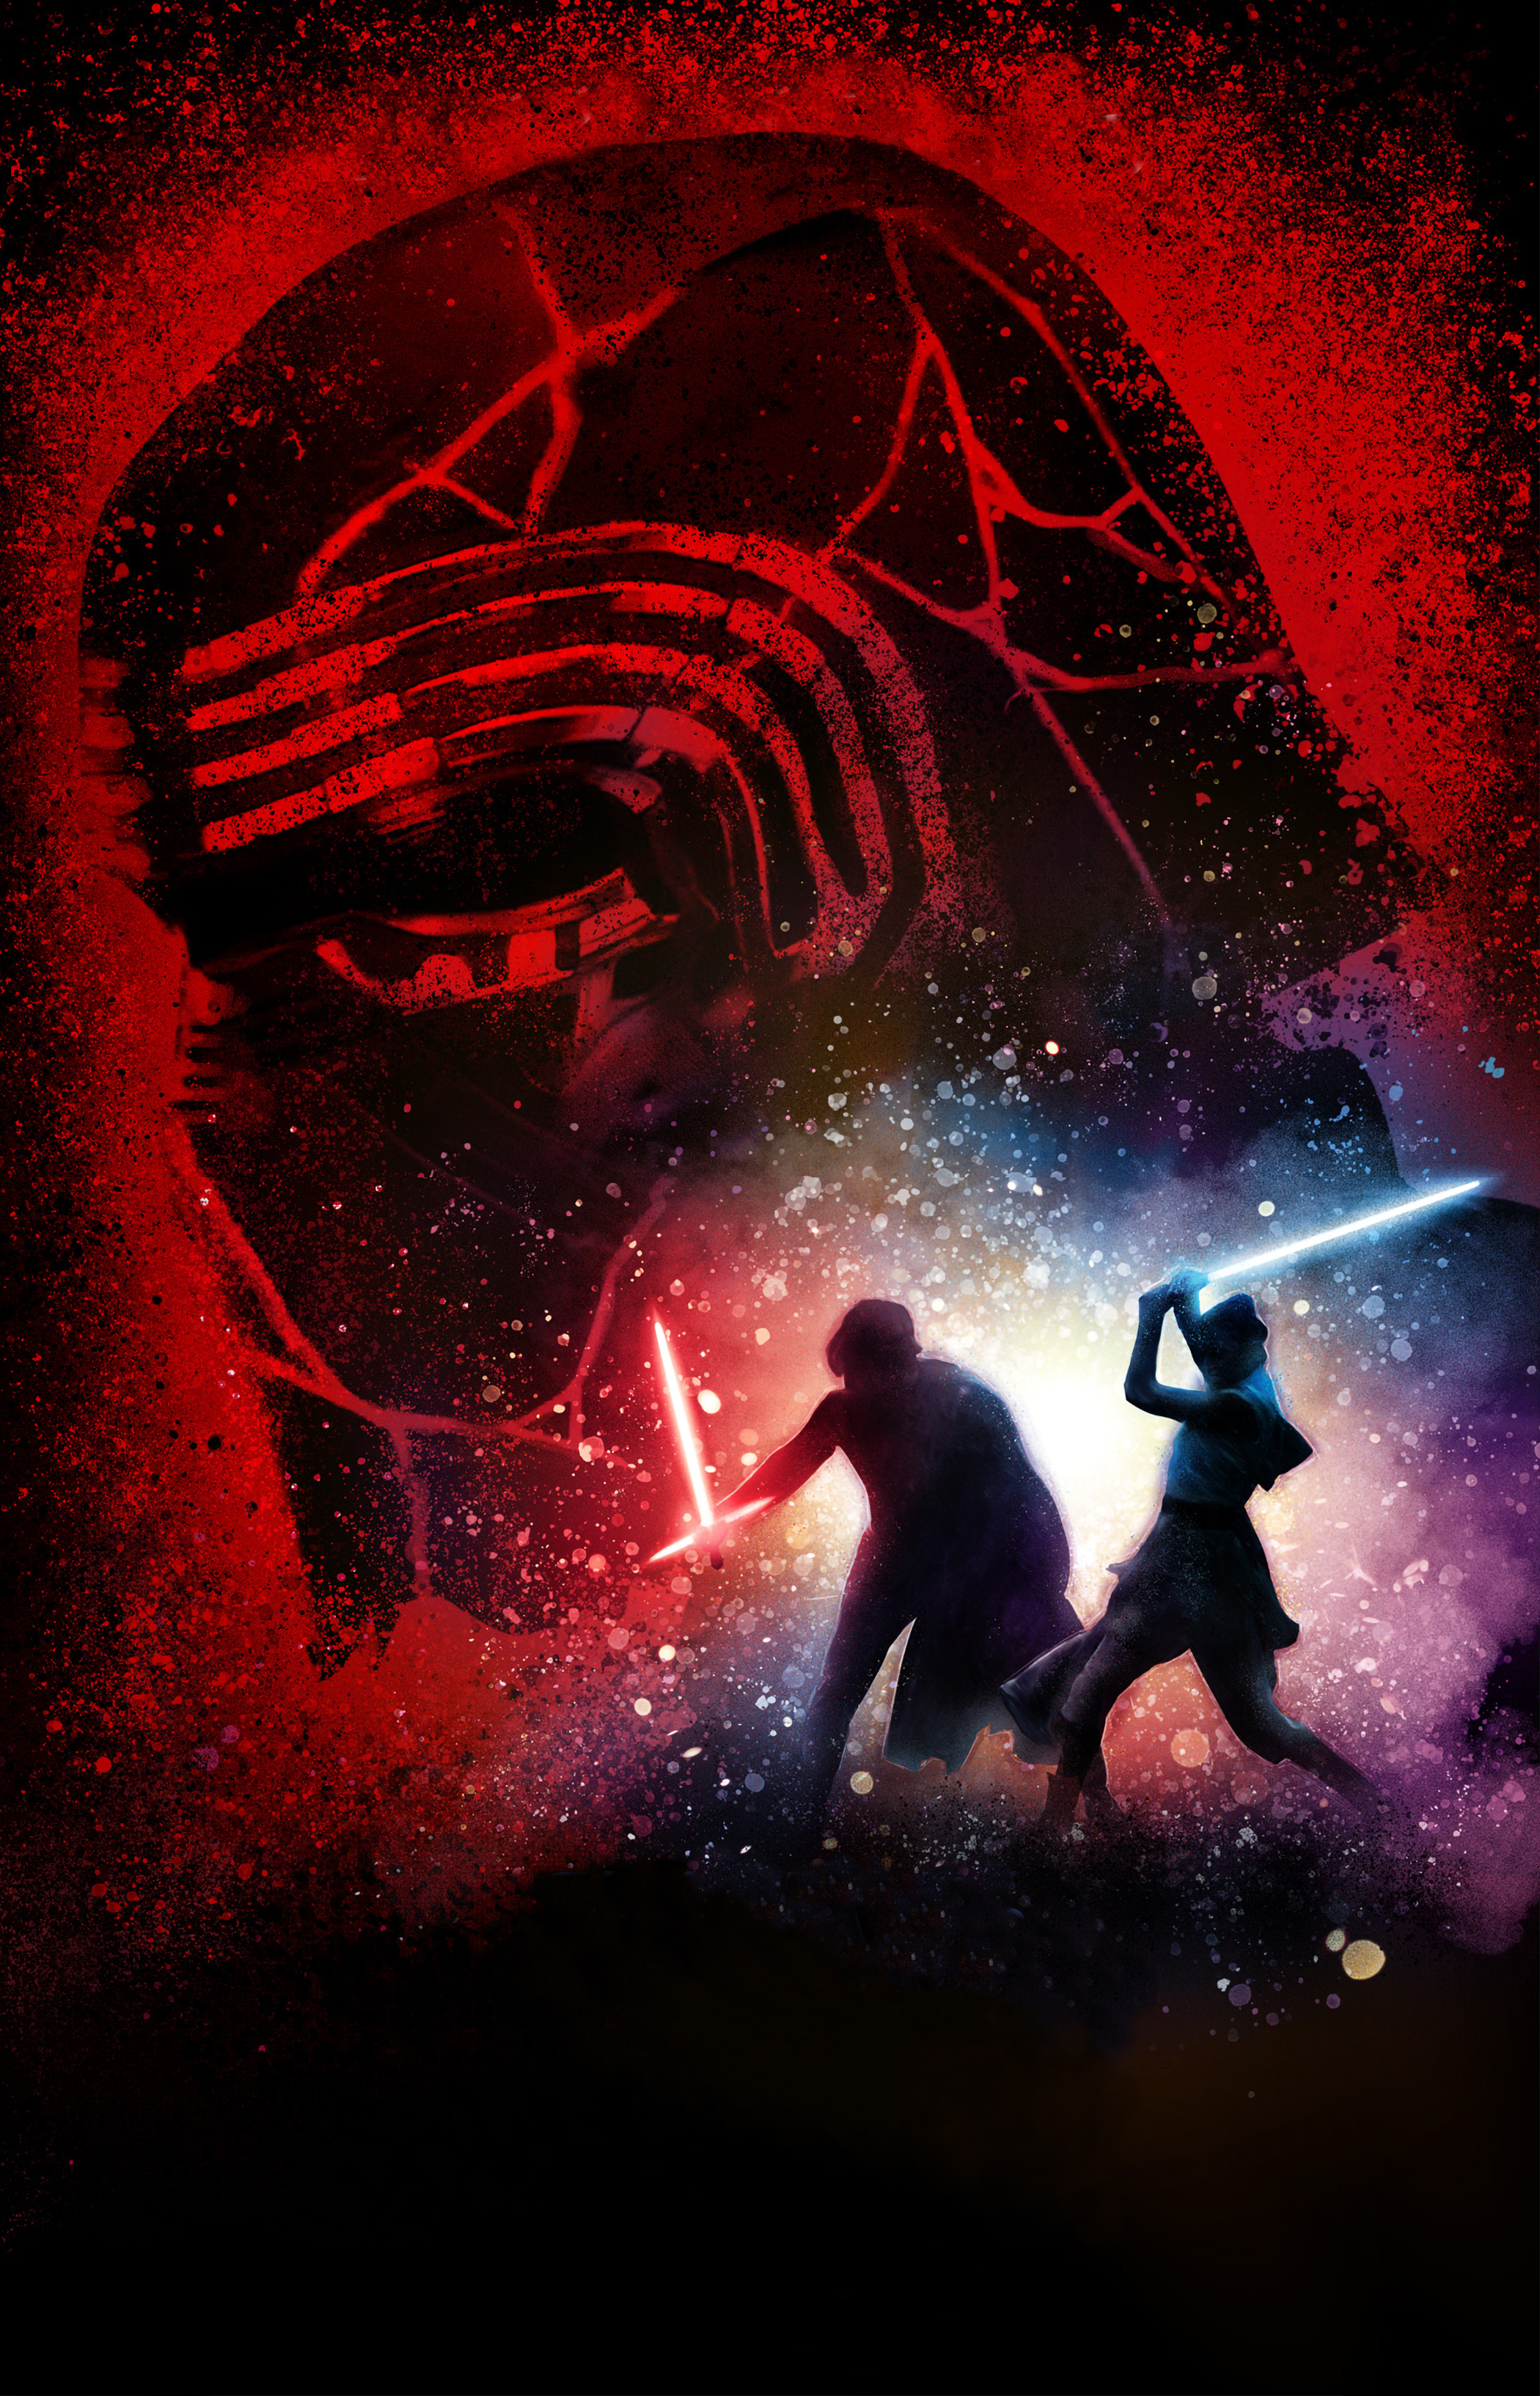 Poster Of Star Wars 9 Wallpaper Hd Movies 4k Wallpapers